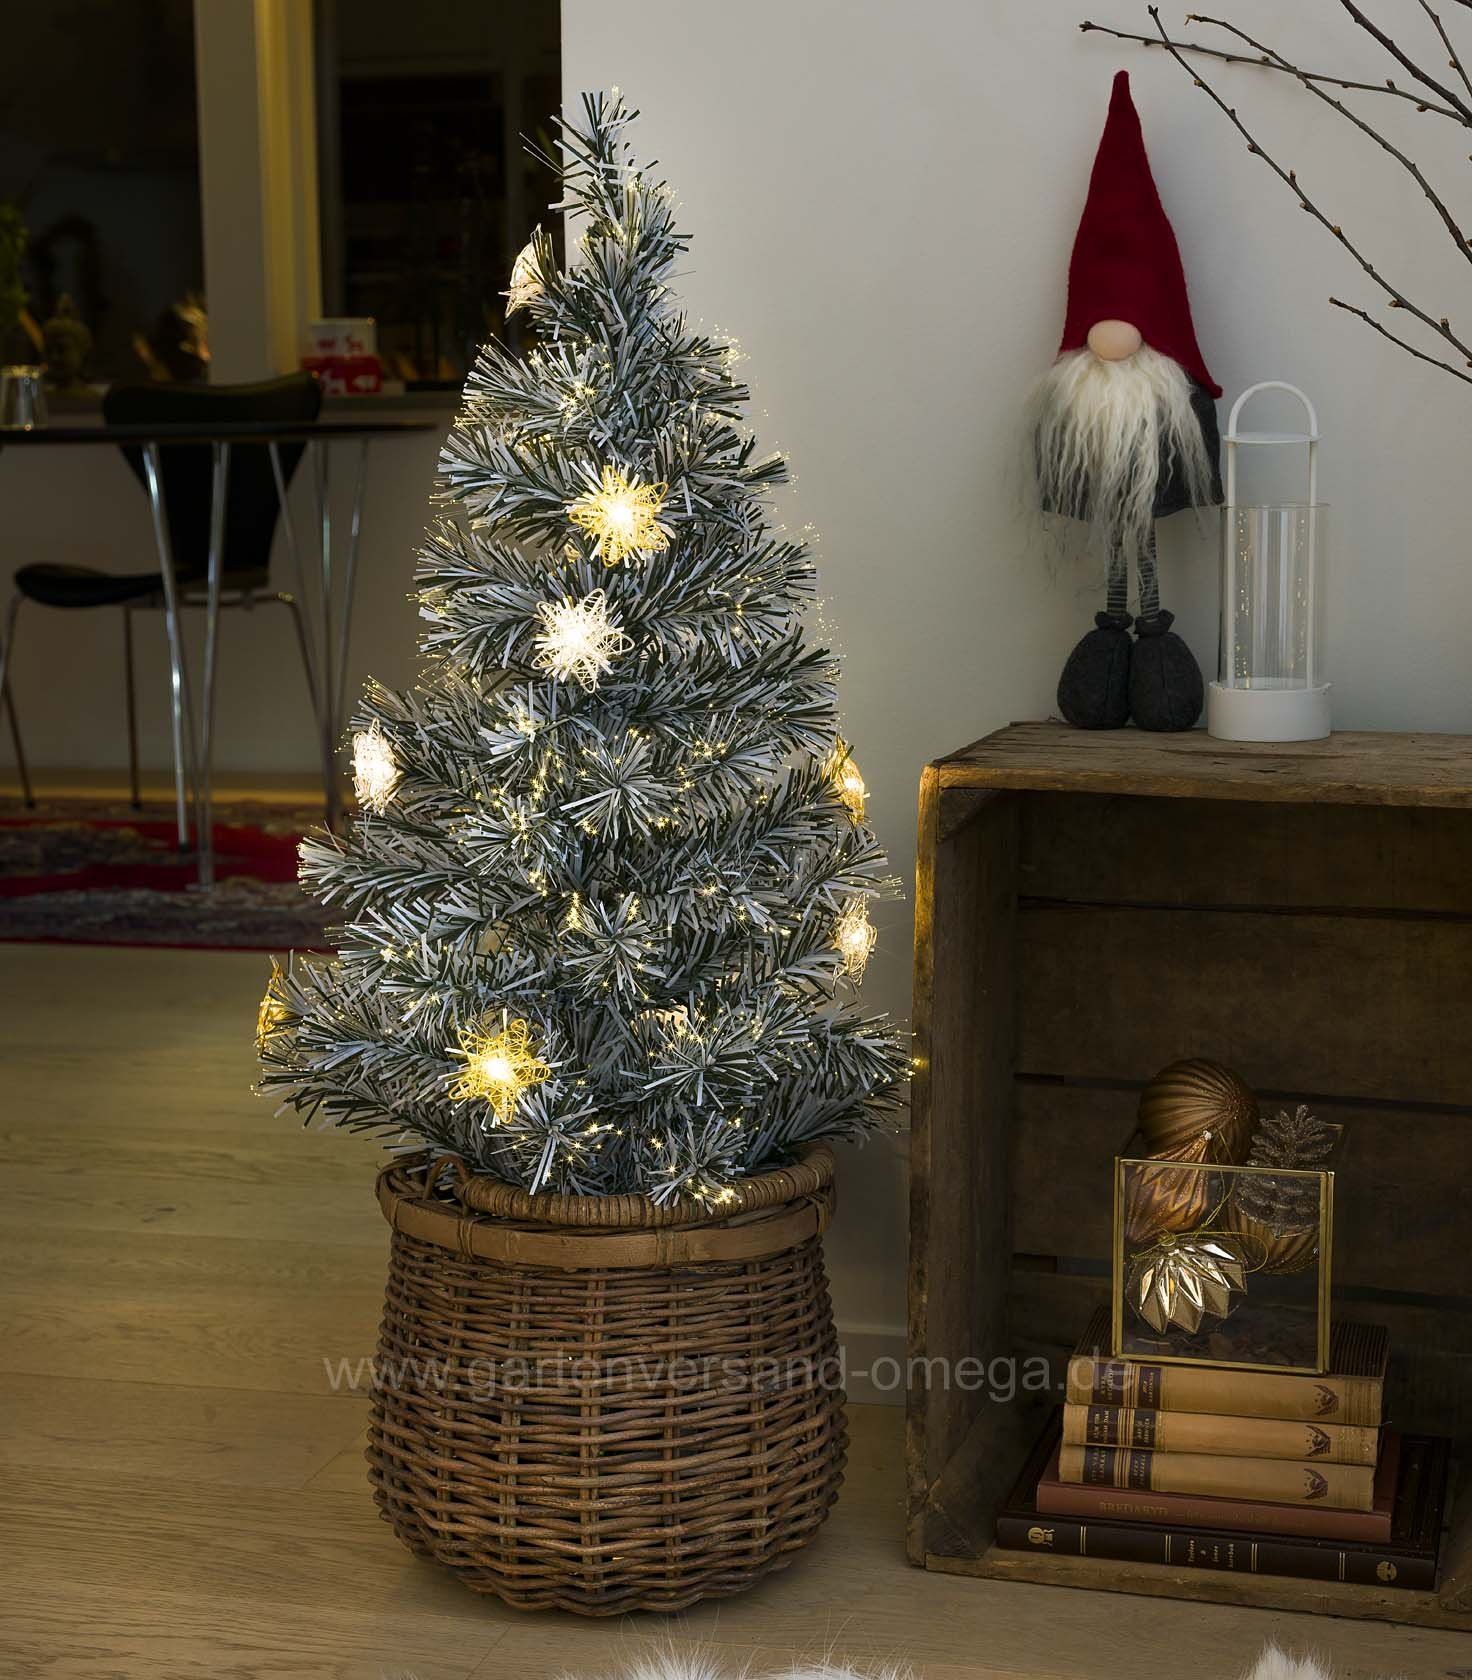 k nstlicher weihnachtsbaum wei mit beleuchtung my blog. Black Bedroom Furniture Sets. Home Design Ideas